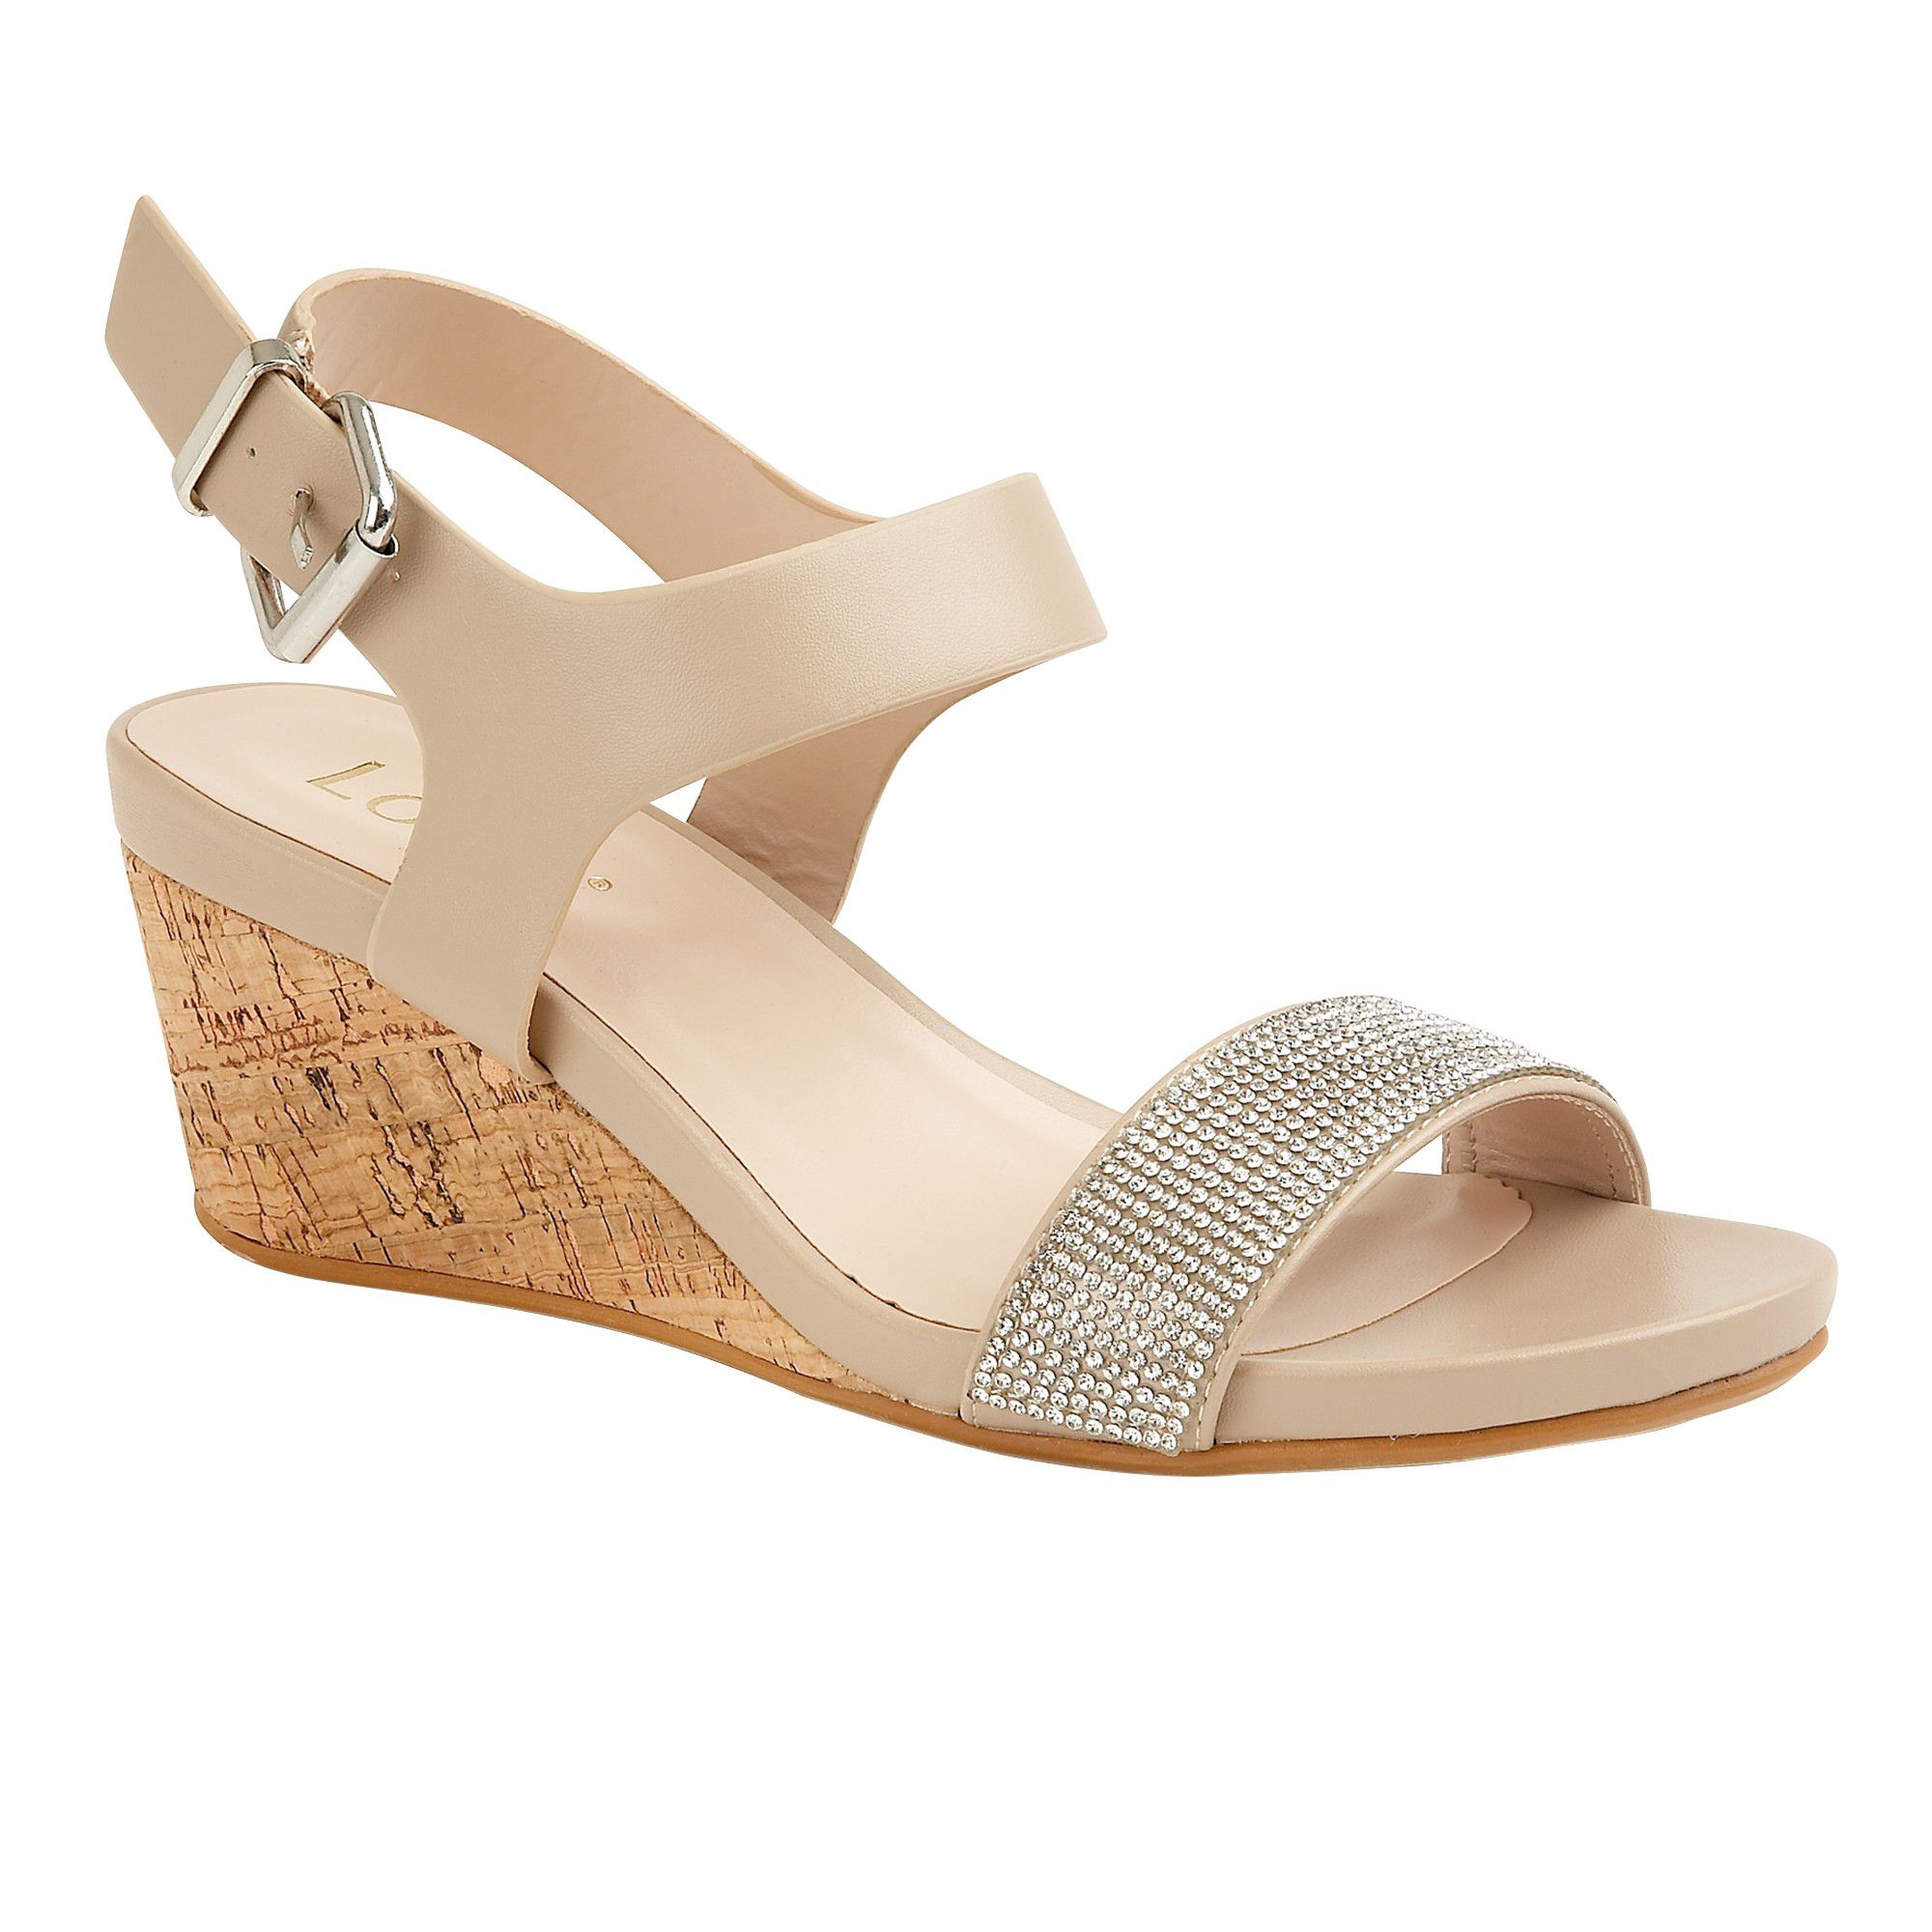 Lotus Ace Wedge Sandals, Nude